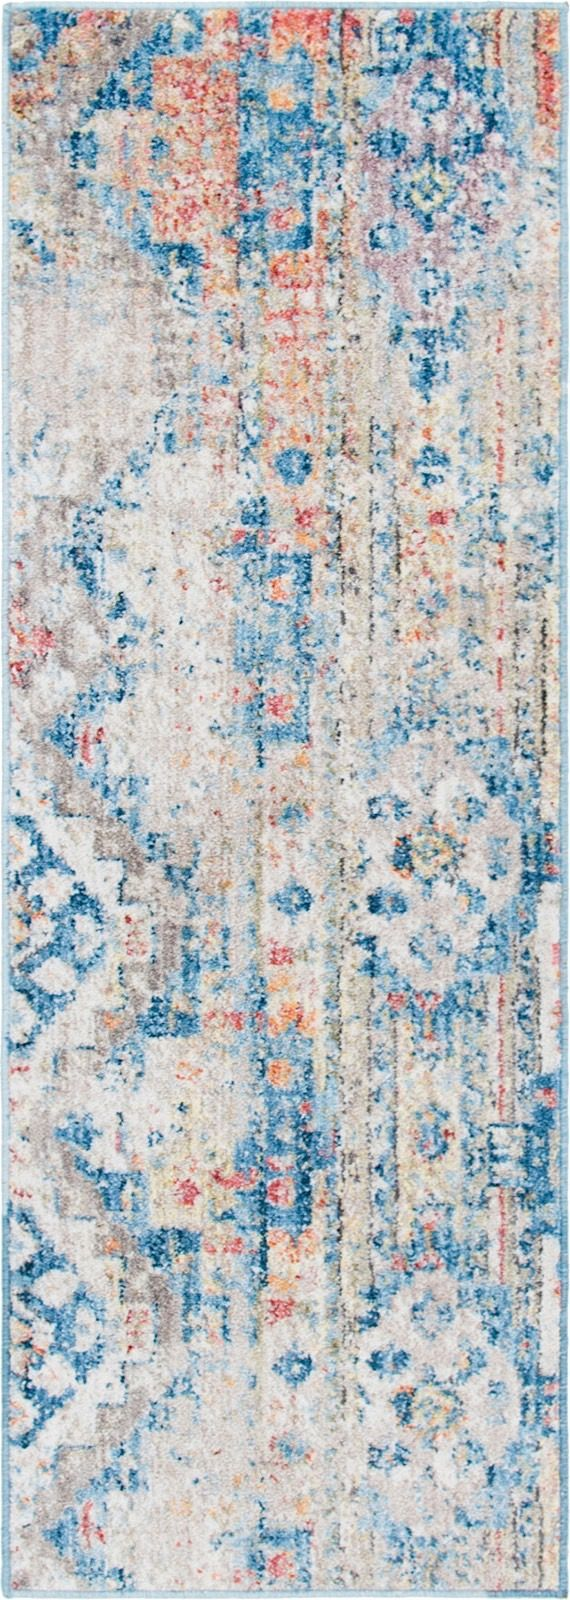 rugpal boheme southwestern/lodge area rug collection